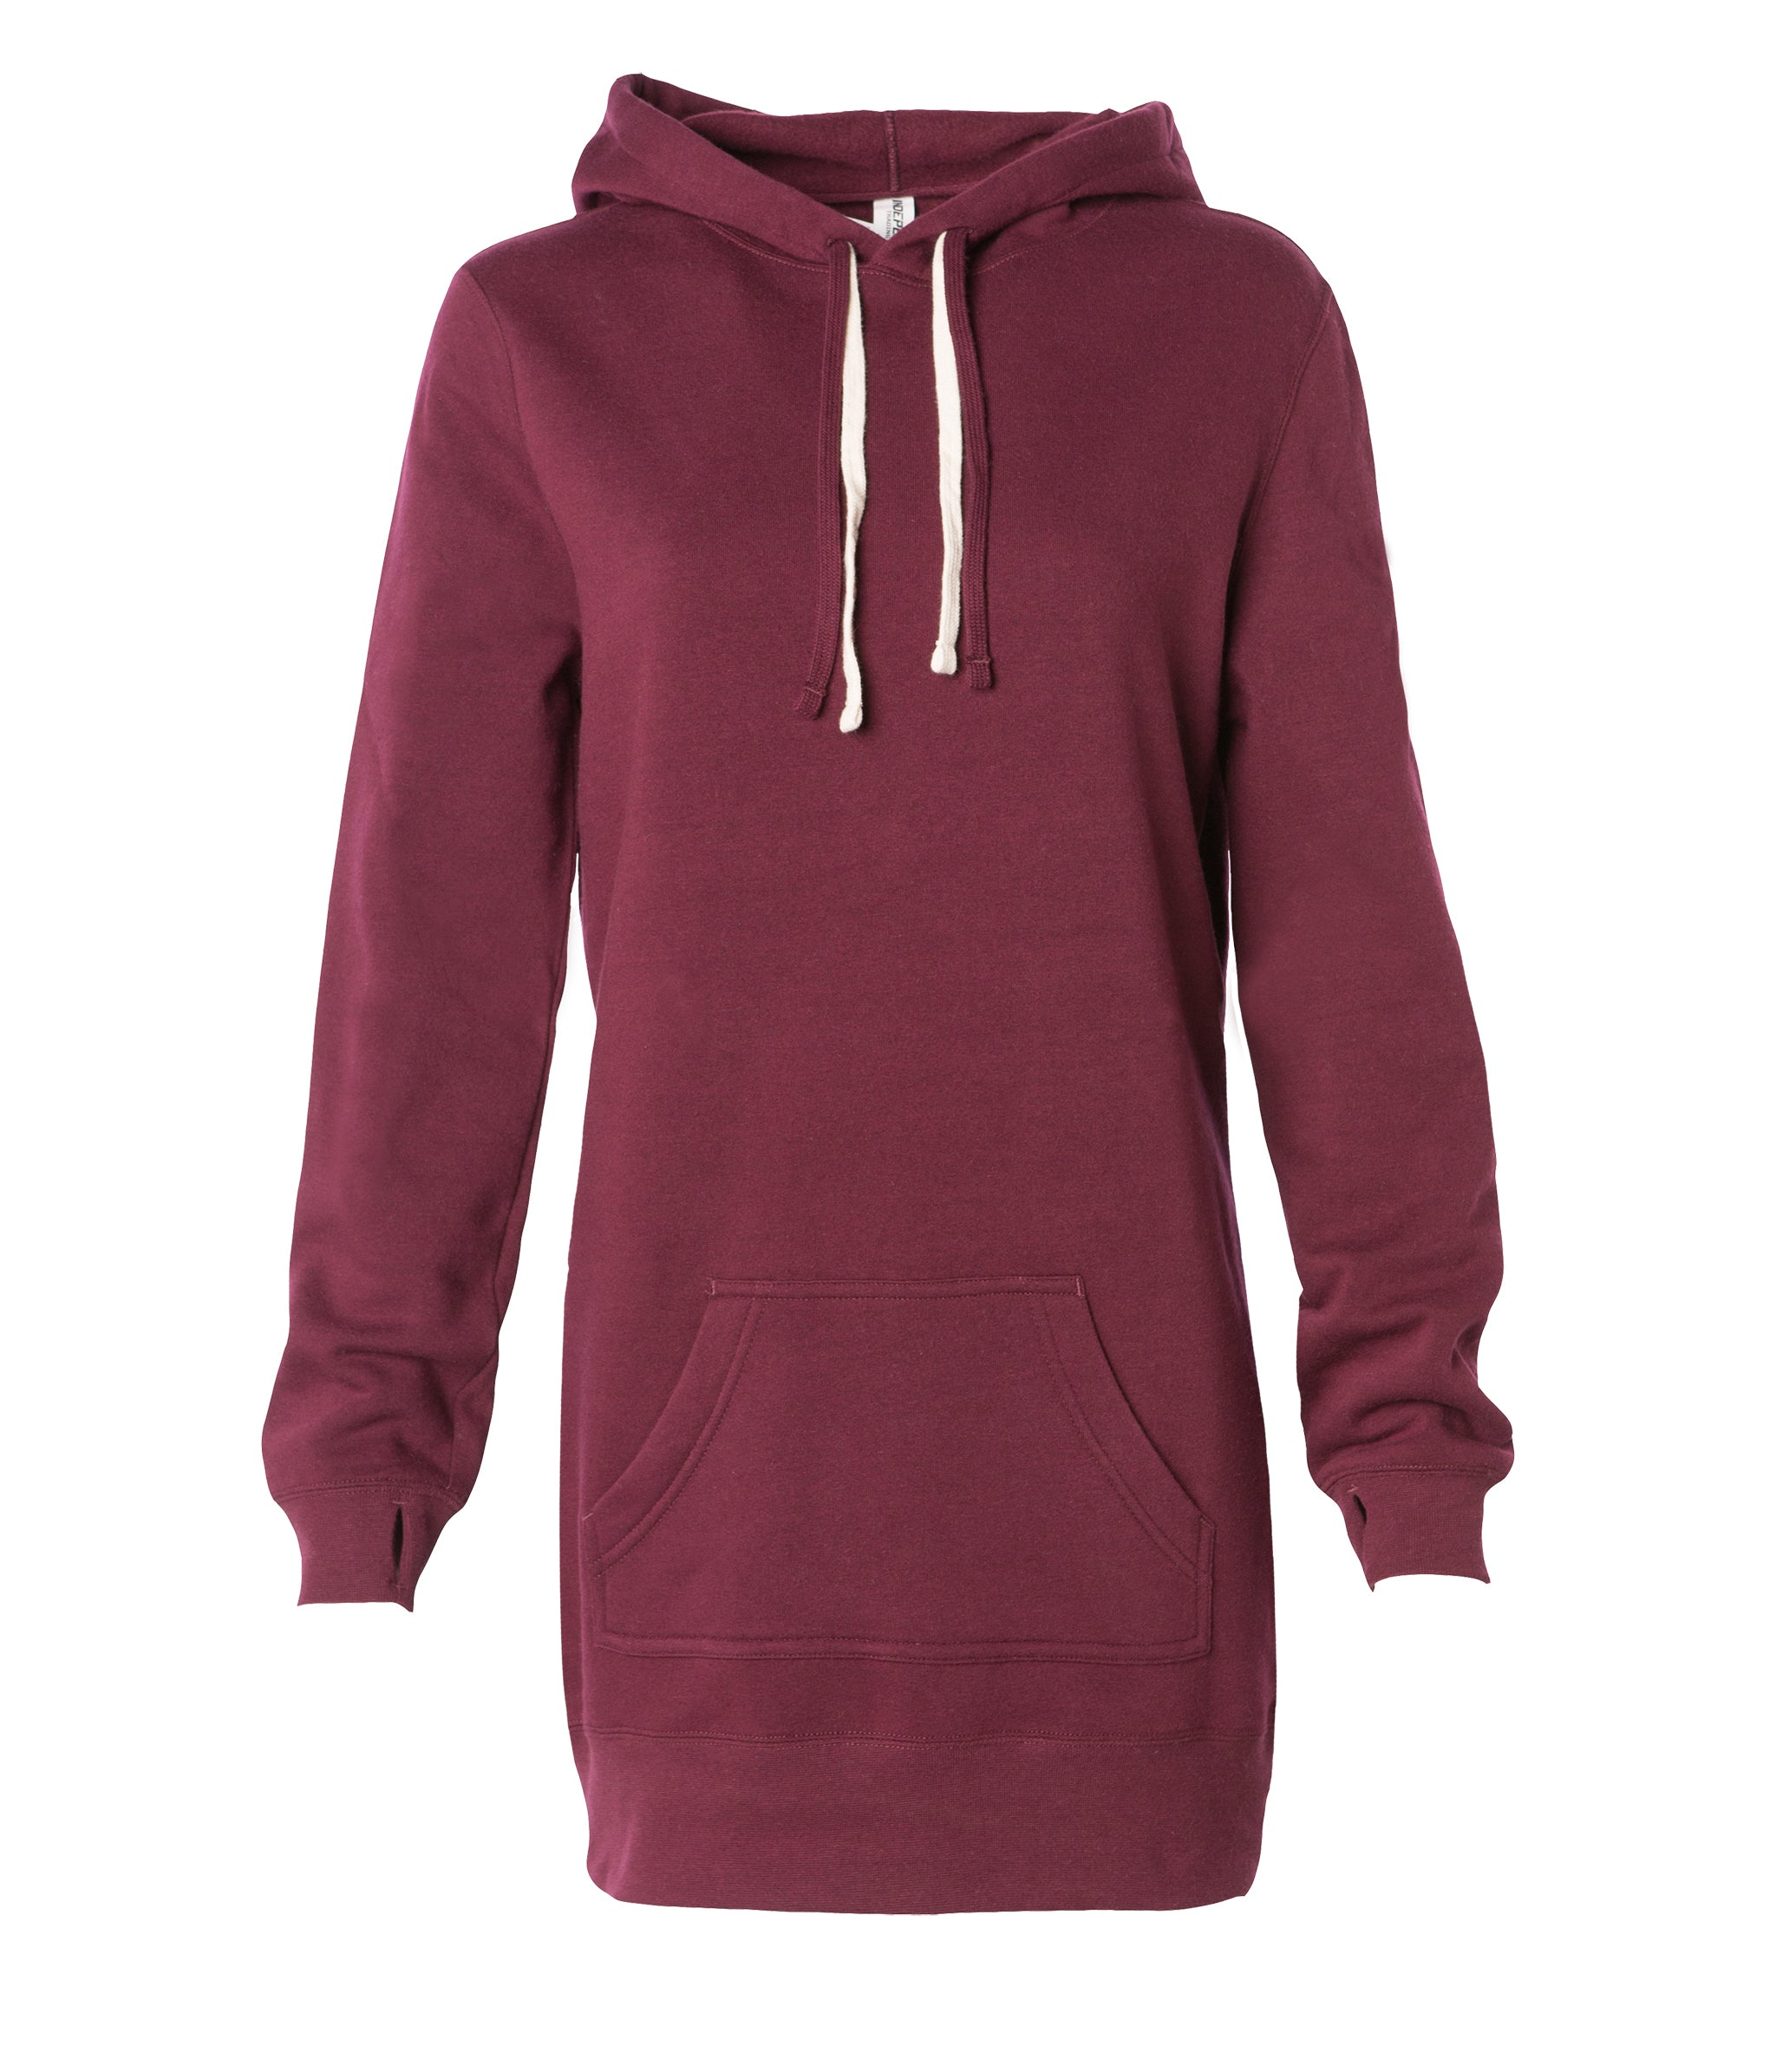 6419b1d1b94552 Womens Pullover Hooded Sweatshirt Dress | Independent Trading Company